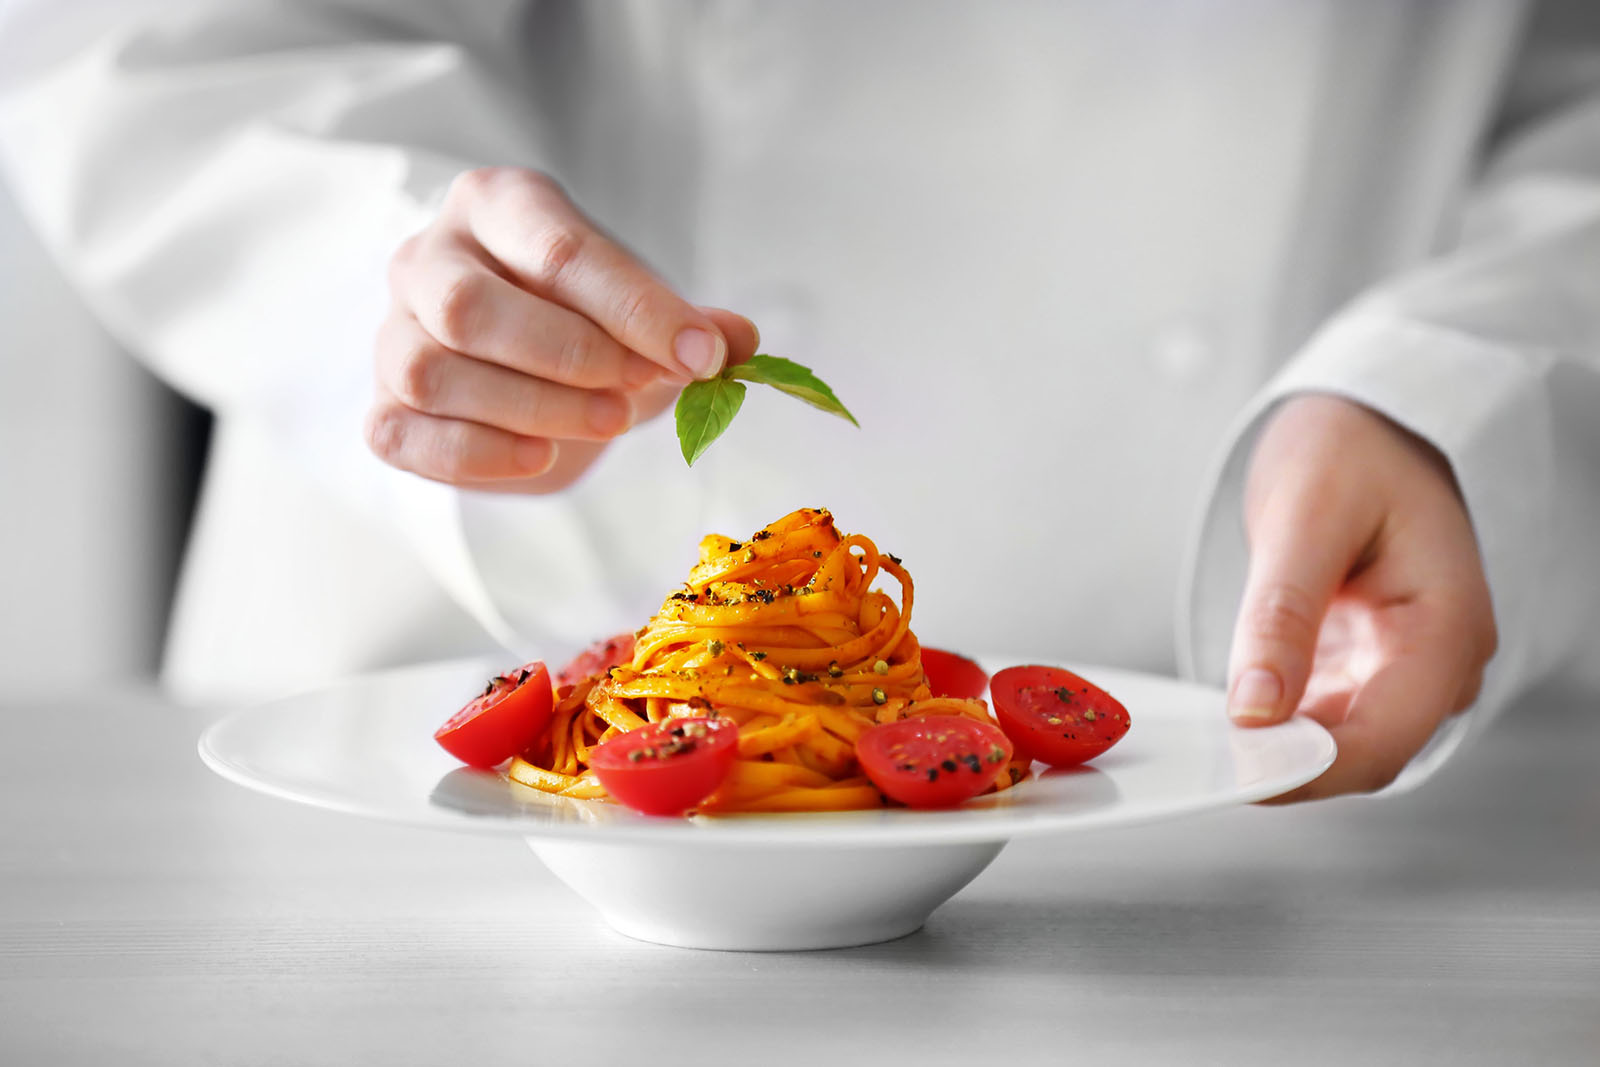 Chef hands preparing delicious cold pasta salad on the table closeup; Shutterstock ID 411058705